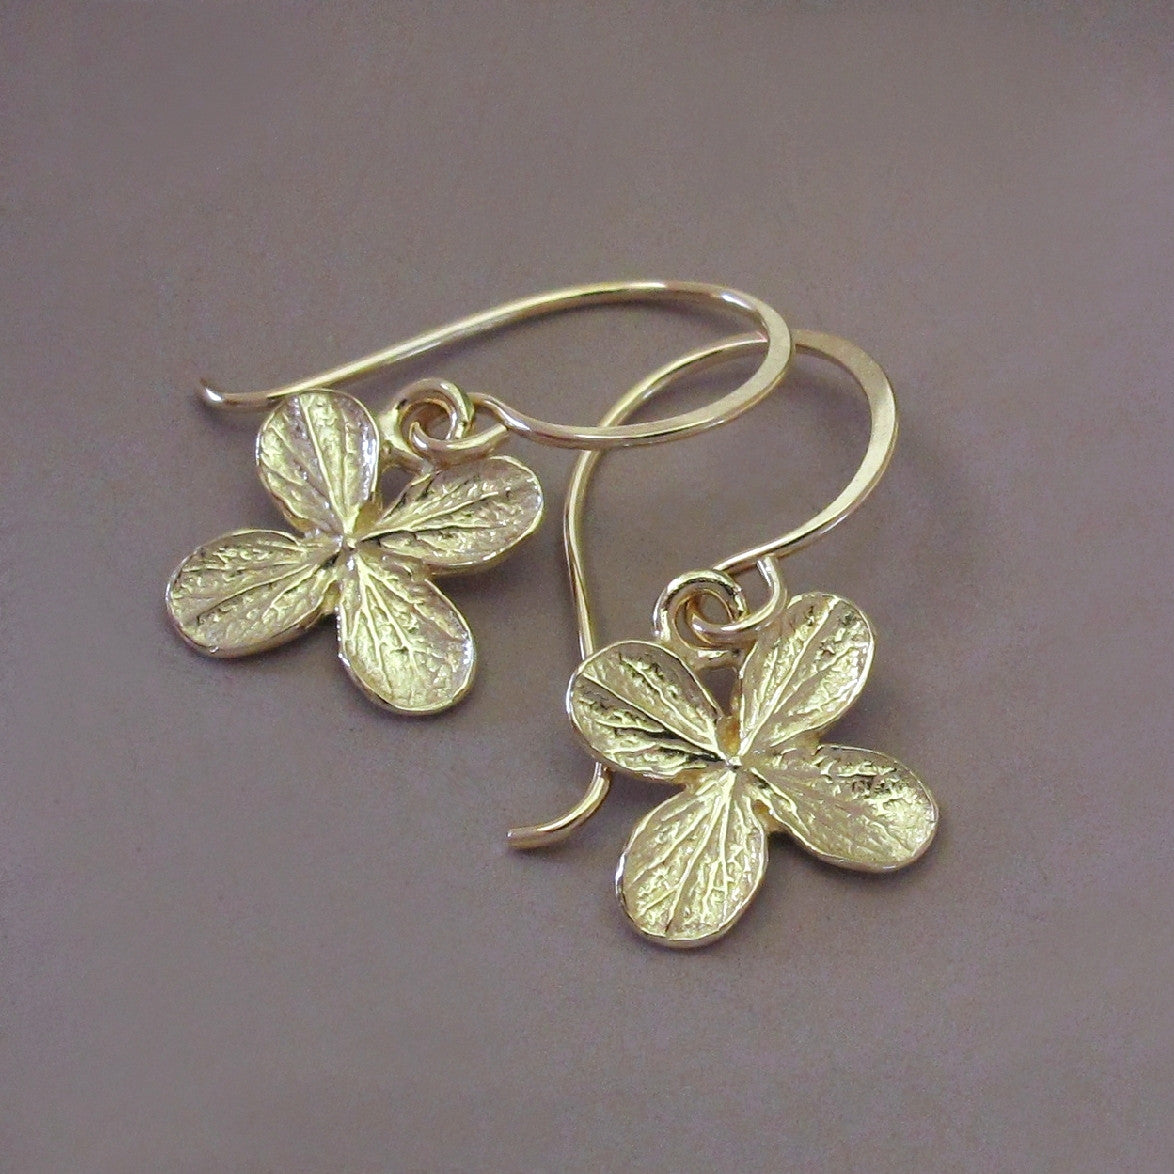 Hydrangea Flower Earrings in 14k Yellow Gold